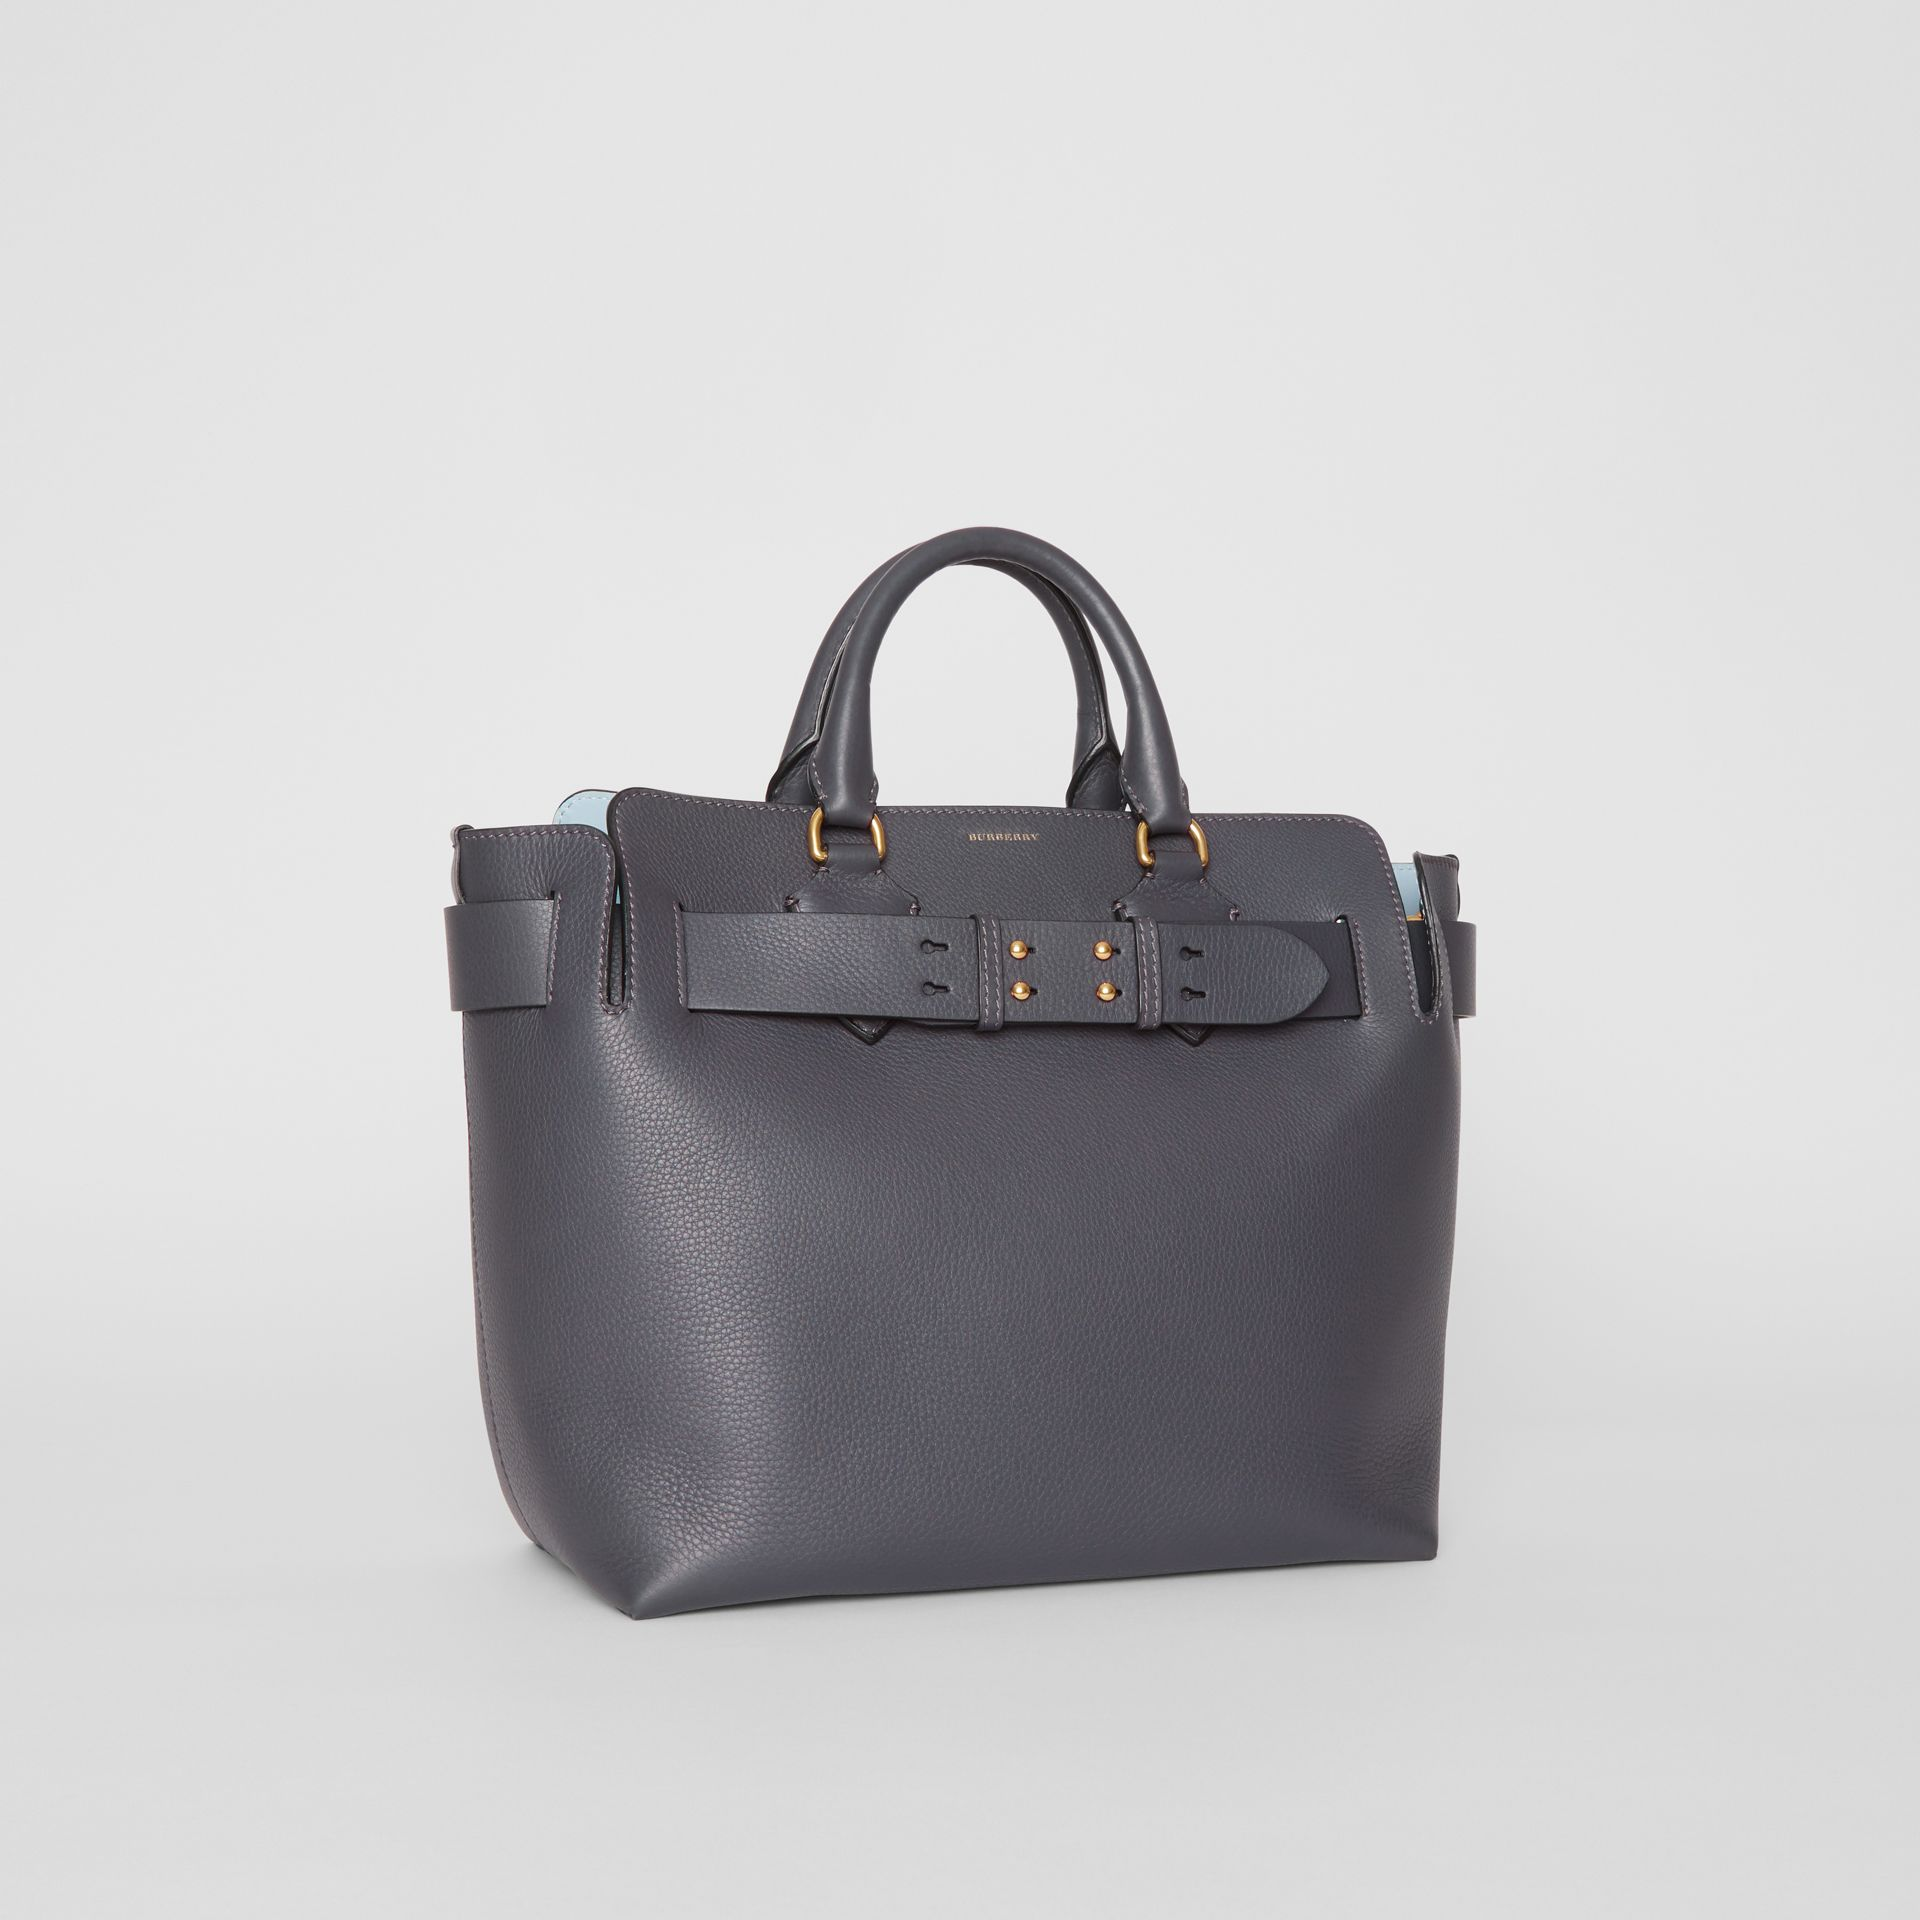 Sac The Belt moyen en cuir (Gris Anthracite) - Femme | Burberry - photo de la galerie 6